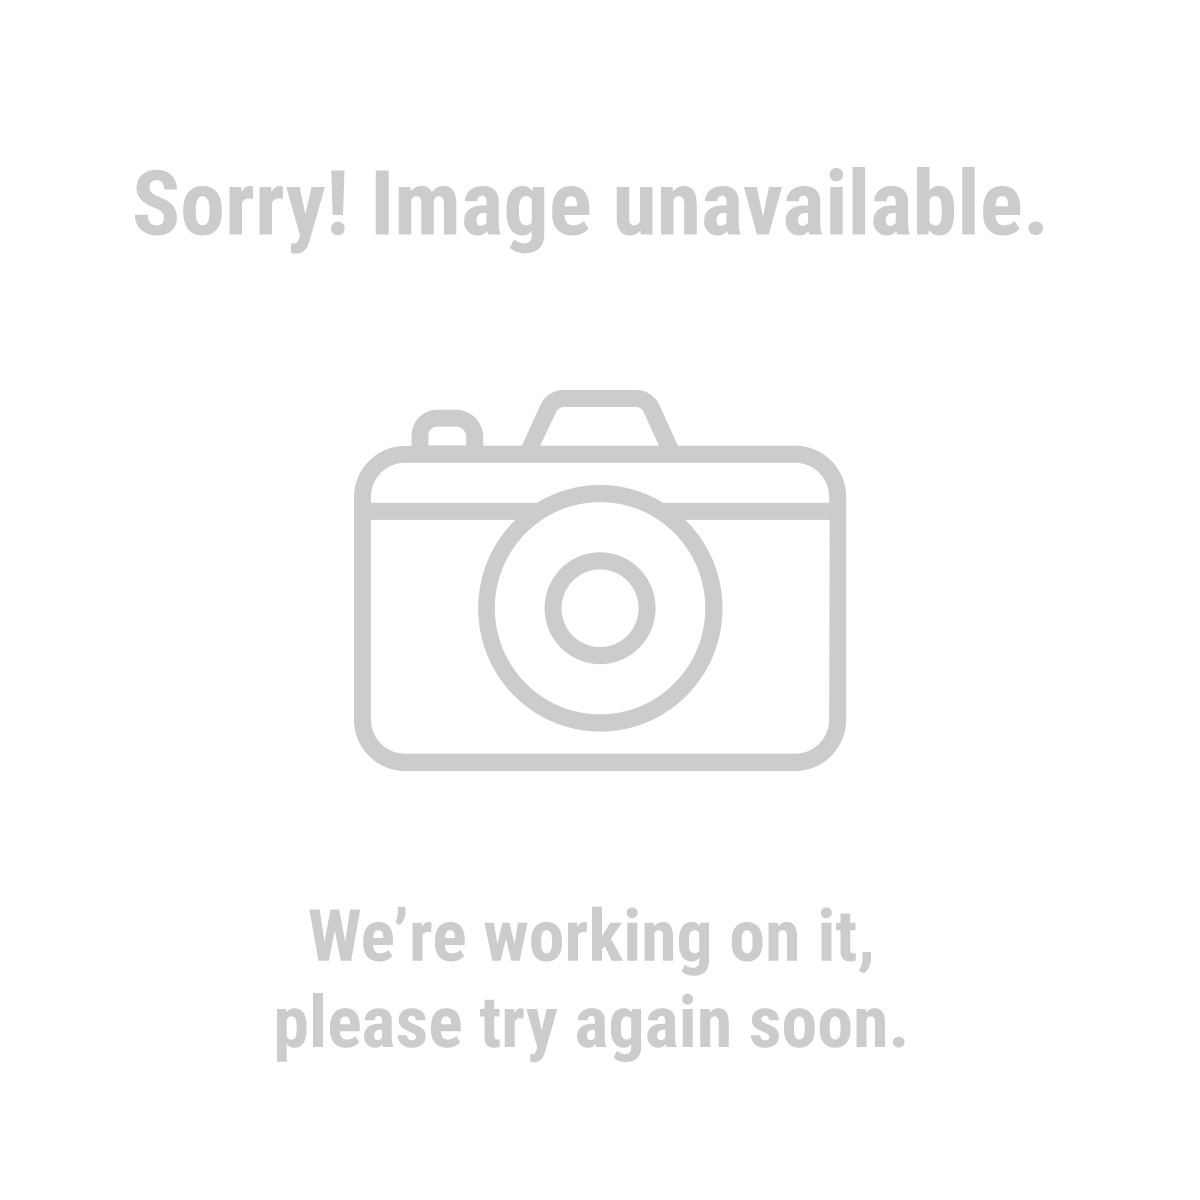 Bunker Hill Security 97075 4 Piece Padlock Set